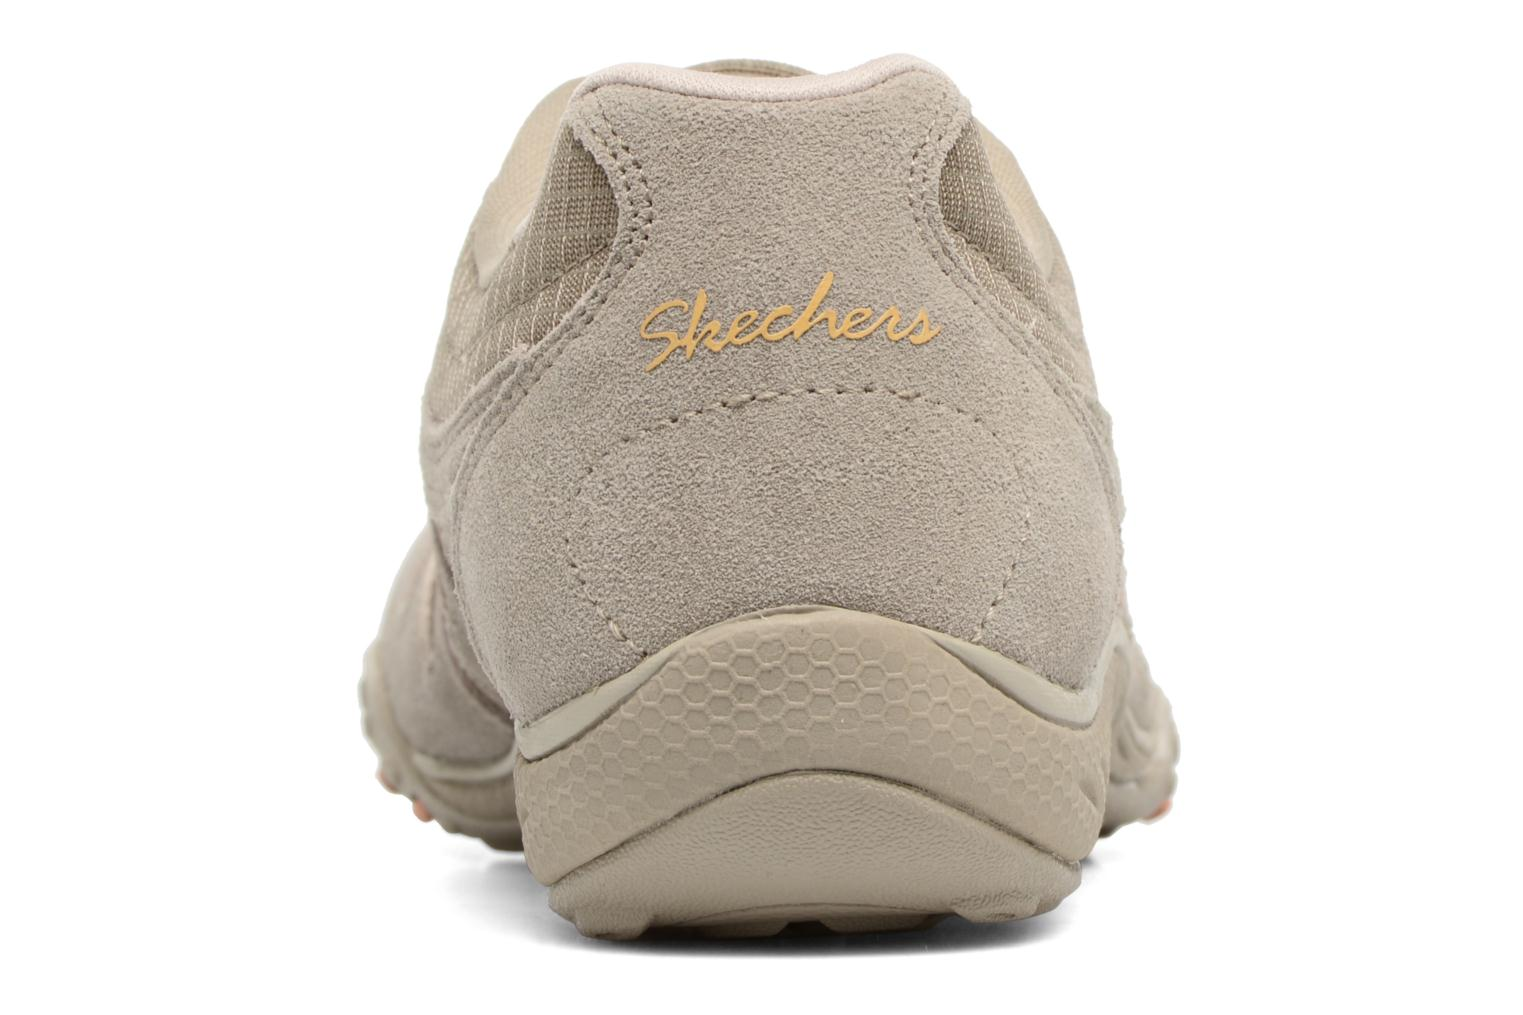 Baskets Skechers Breathe-Easy - Jackpot 22532 Beige vue droite